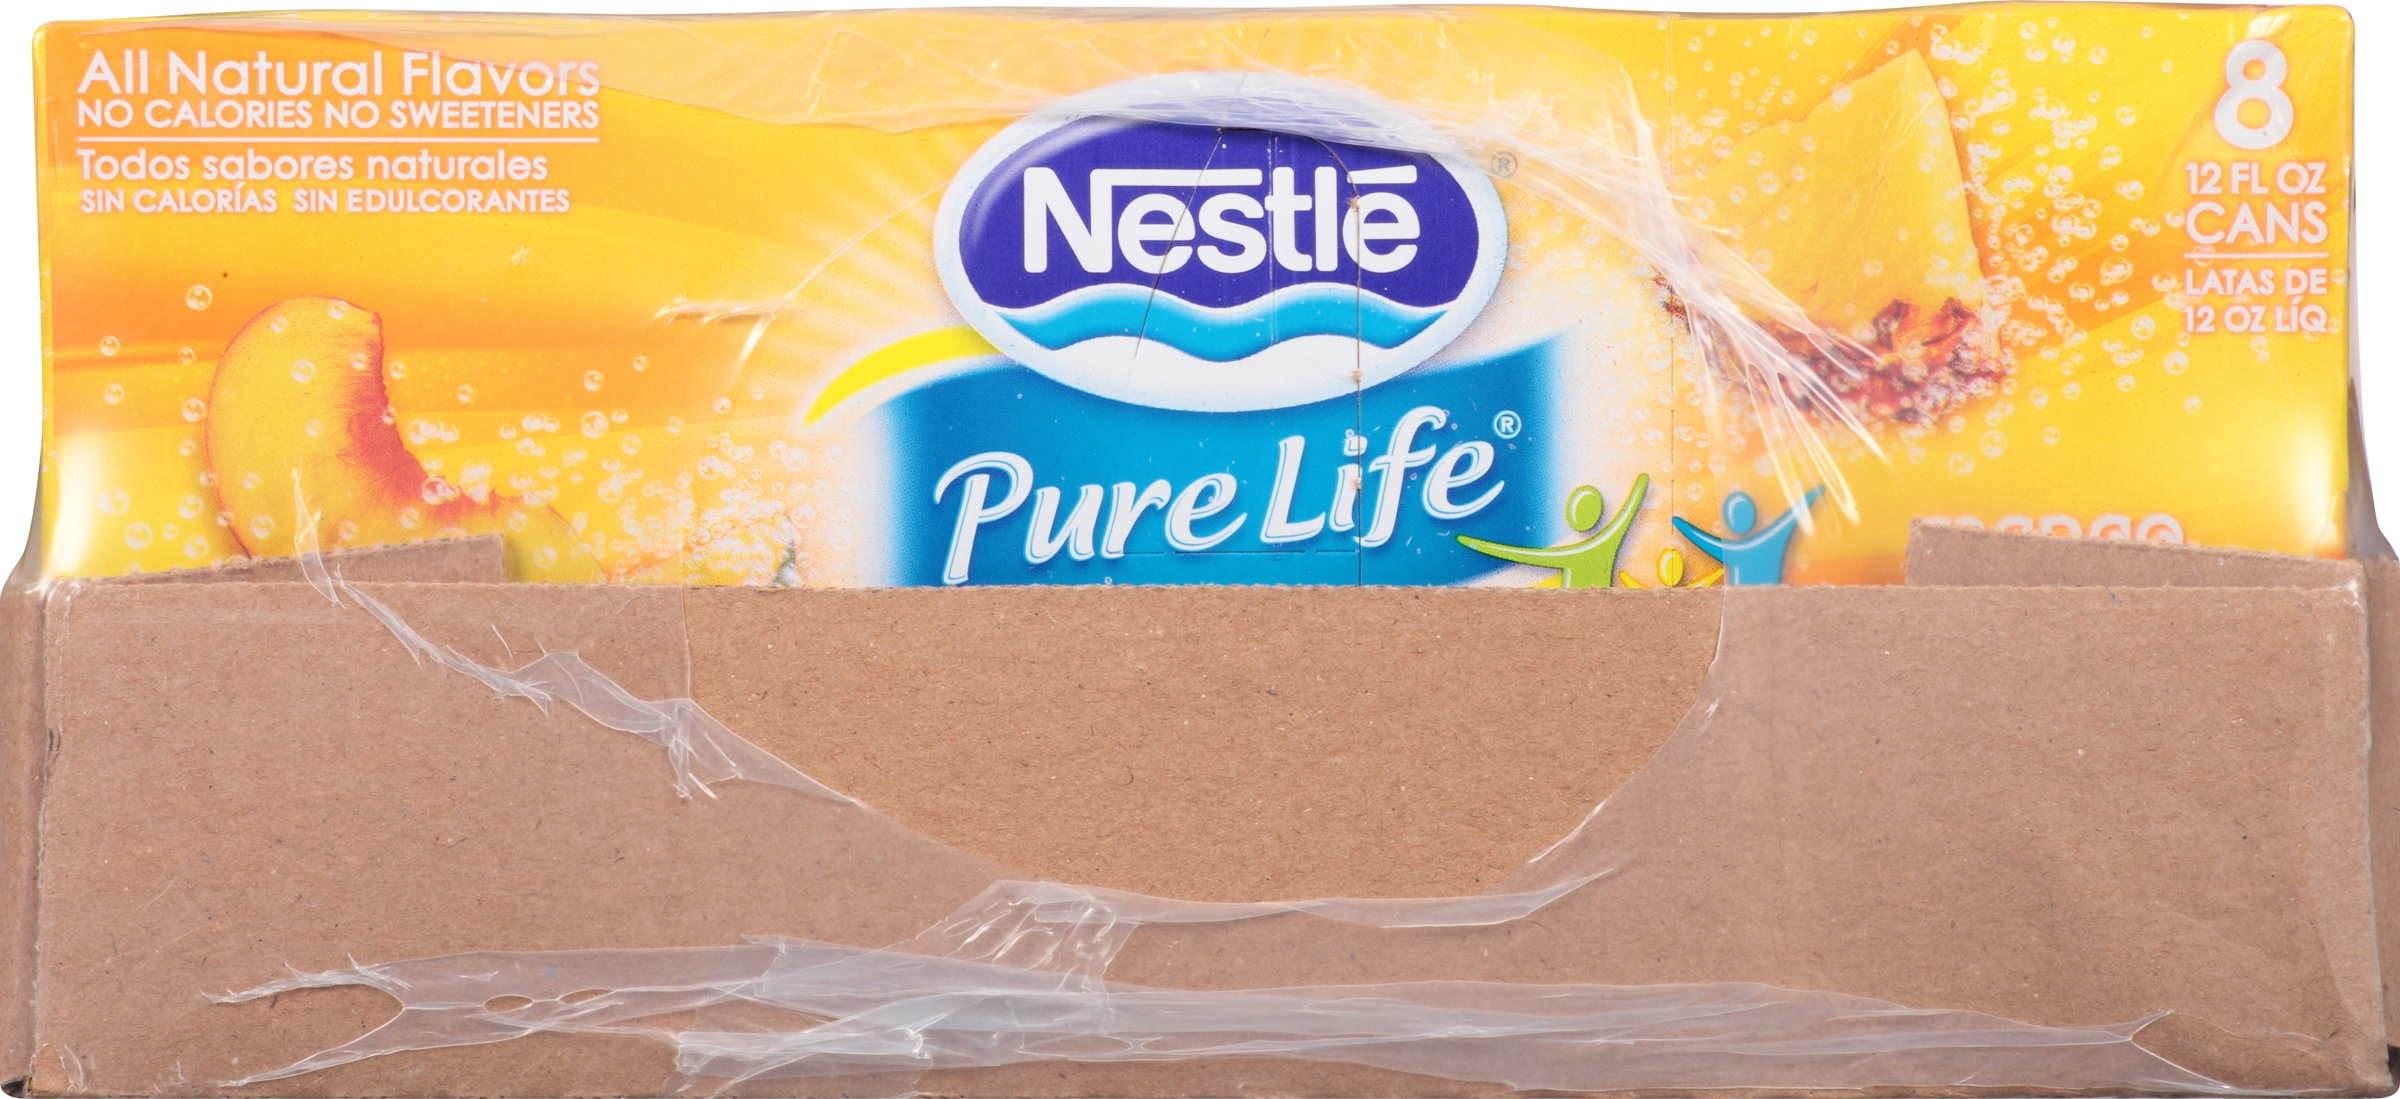 Nestle Pure Life Exotics Mango Peach Pineapple